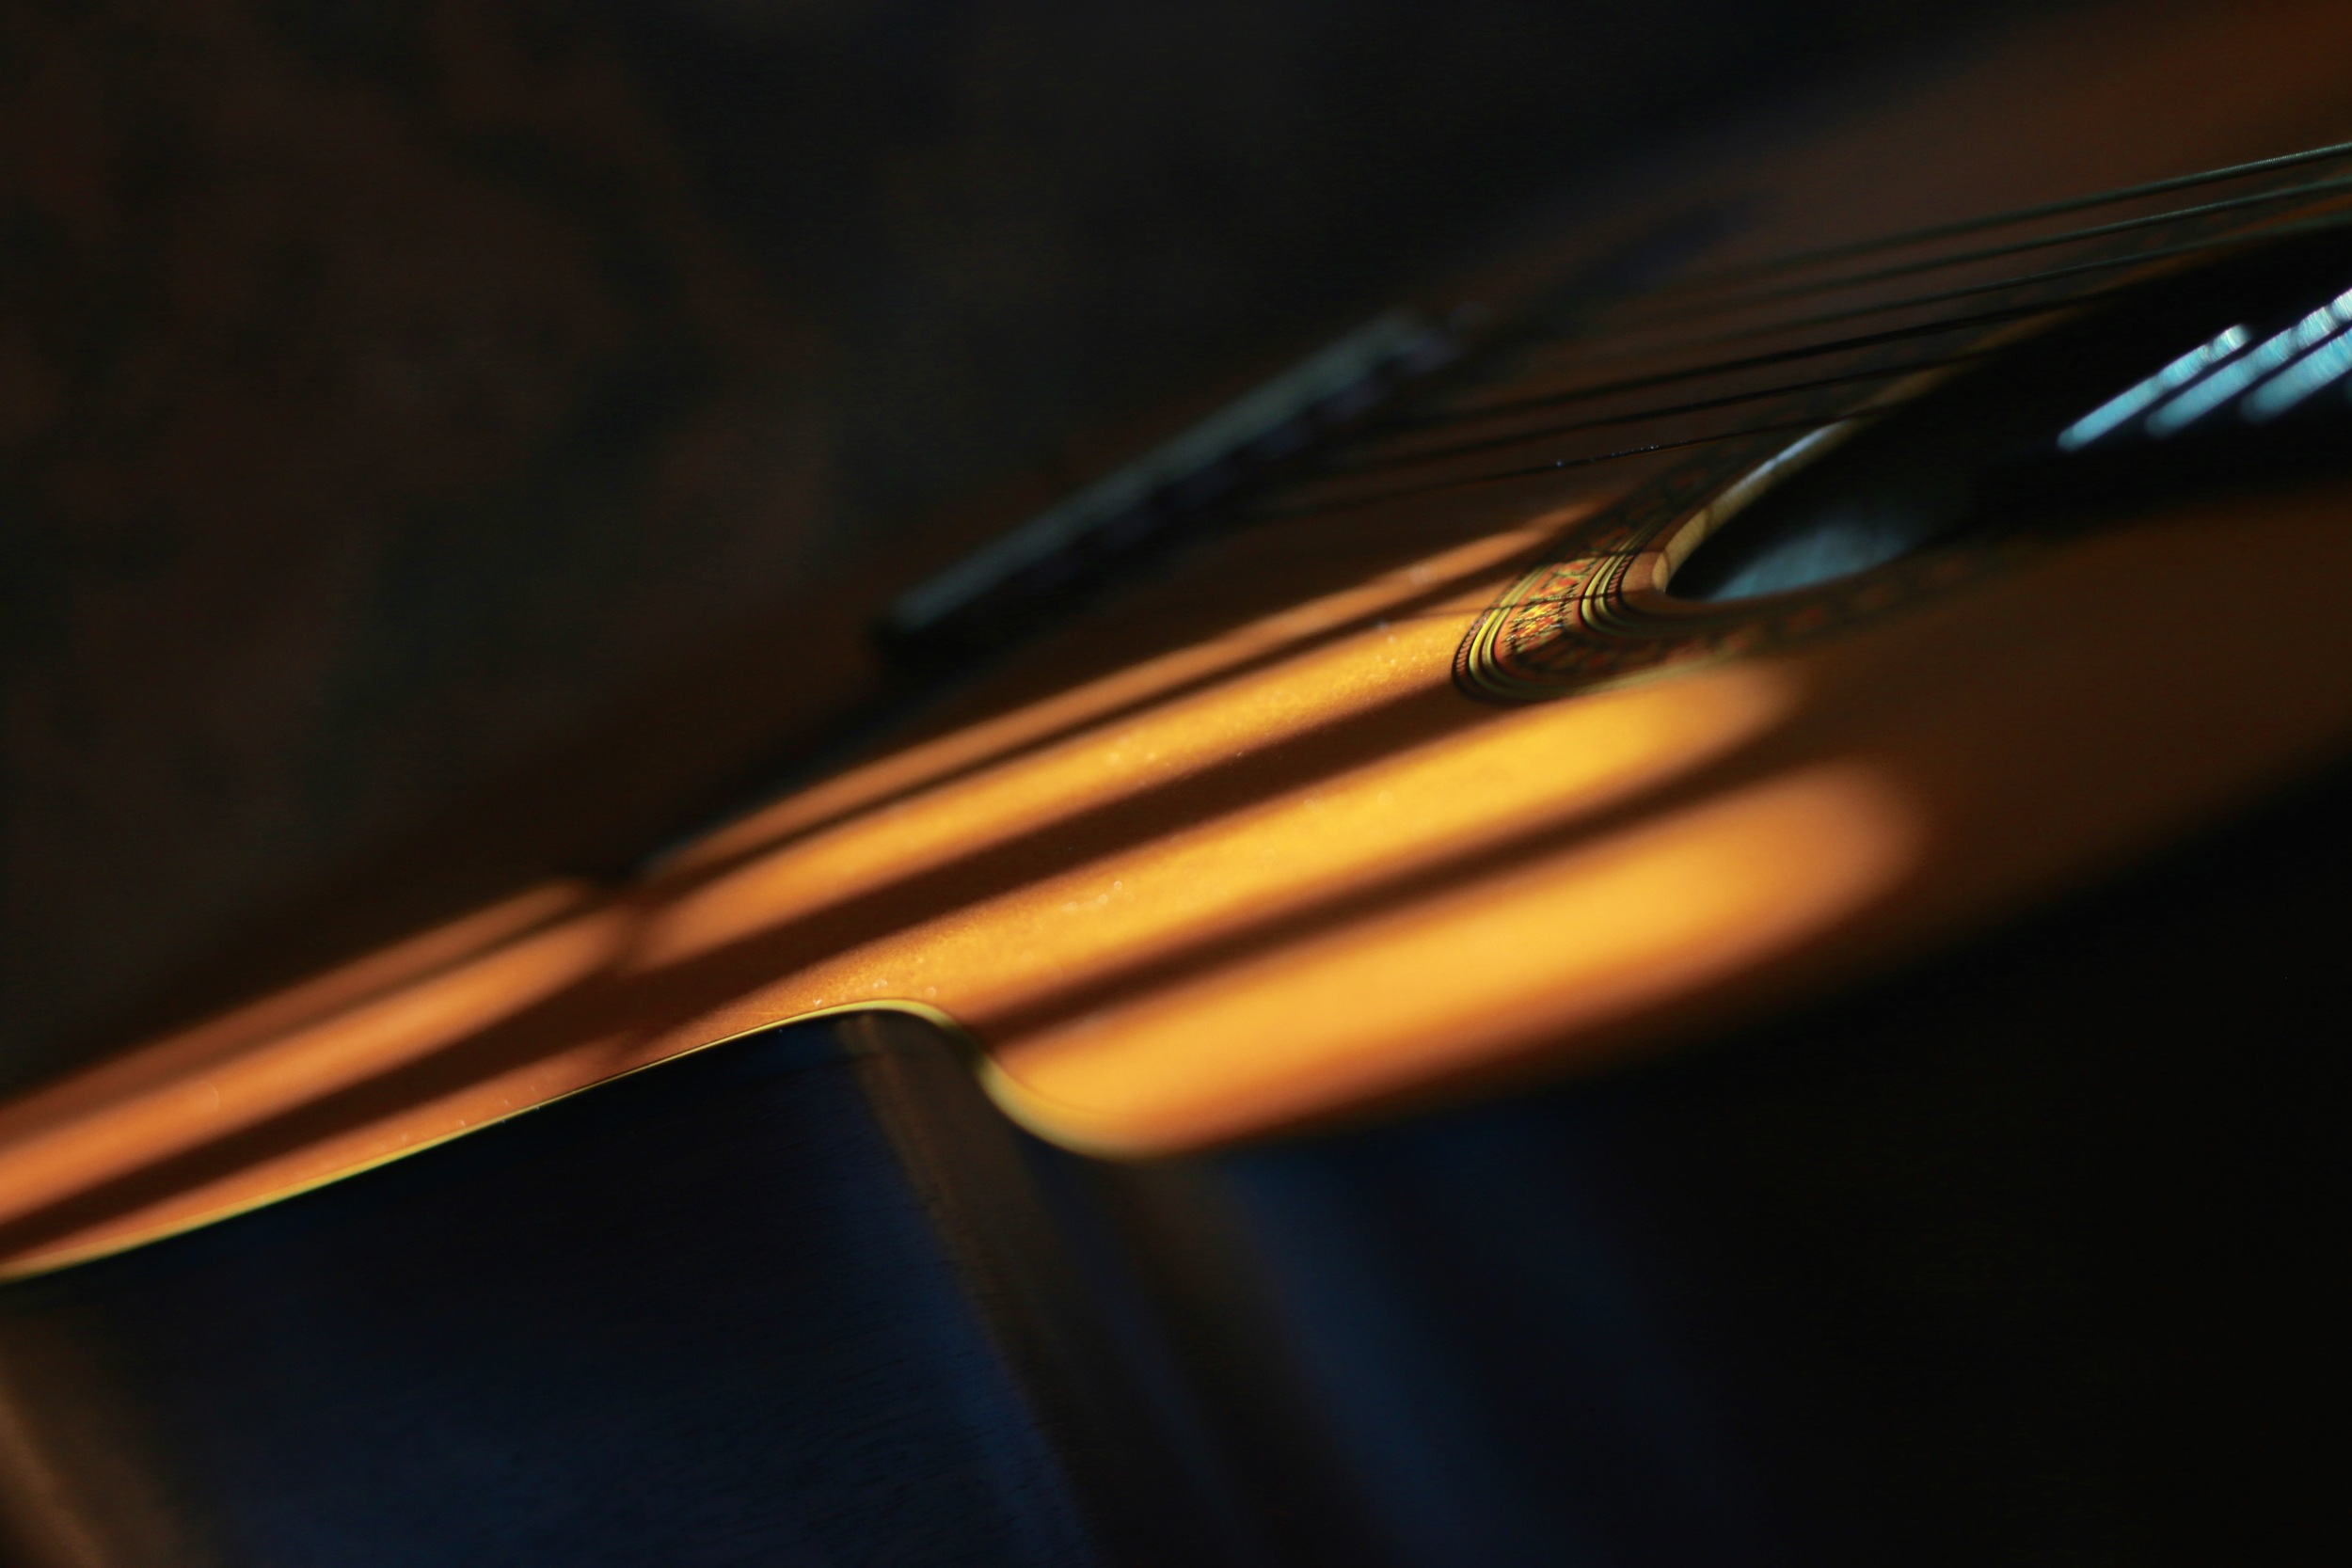 Dylan's guitar in the afternoon light.